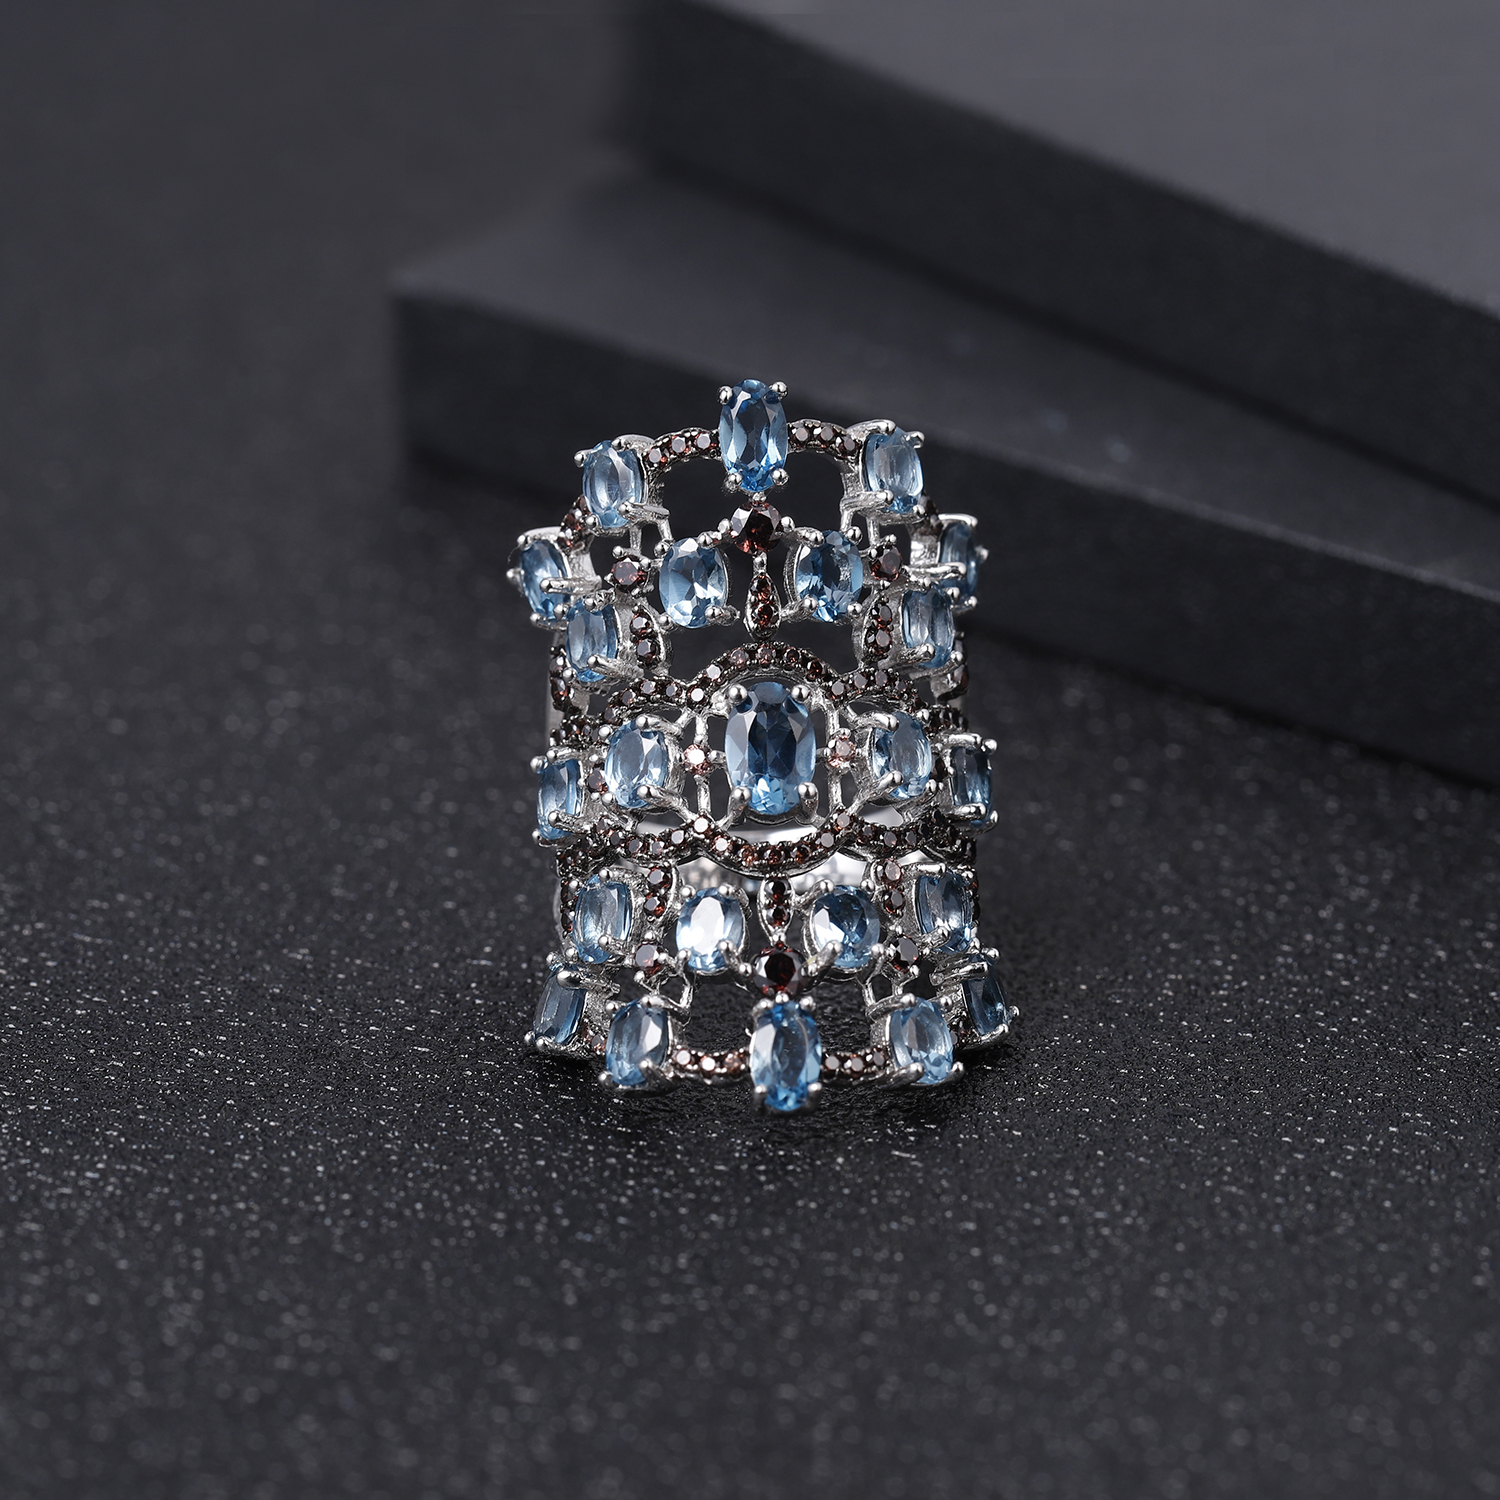 GEM'S BALLET Luxury 7.59Ct Natural London Blue Topaz Ring 925 Sterling Silver Vintage Gemstone Ring For Women Party Fine Jewelry